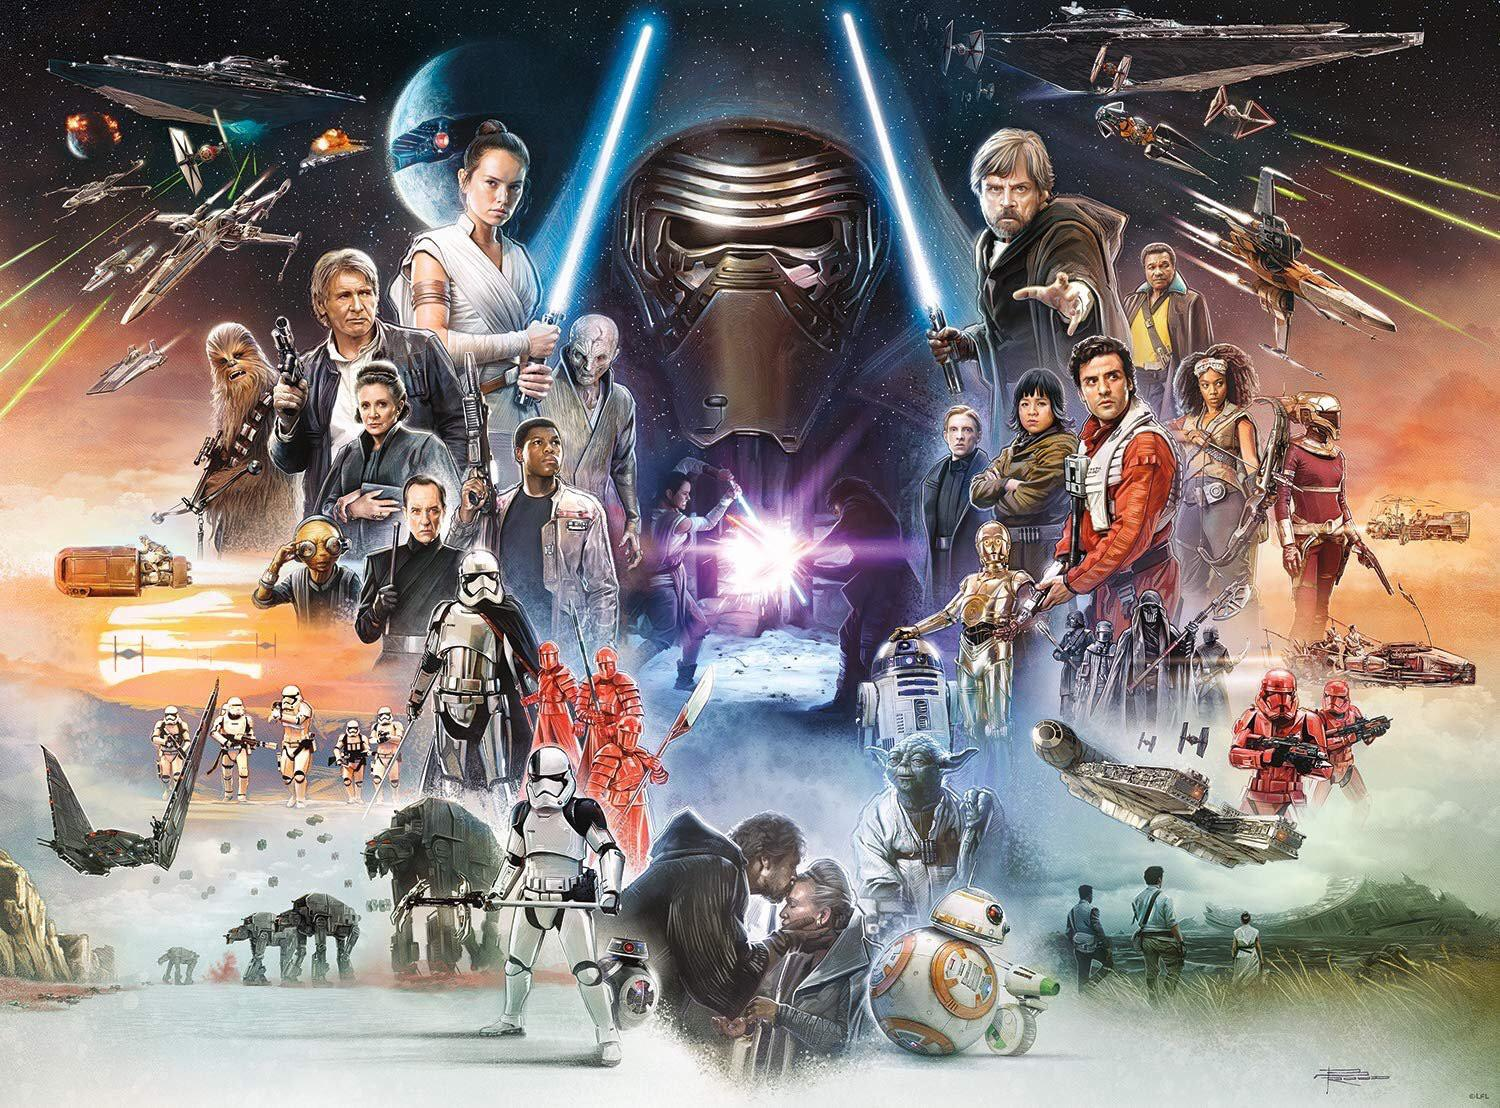 Star Wars Sequel Trilogy Characters Wallpapers Wallpaper Cave